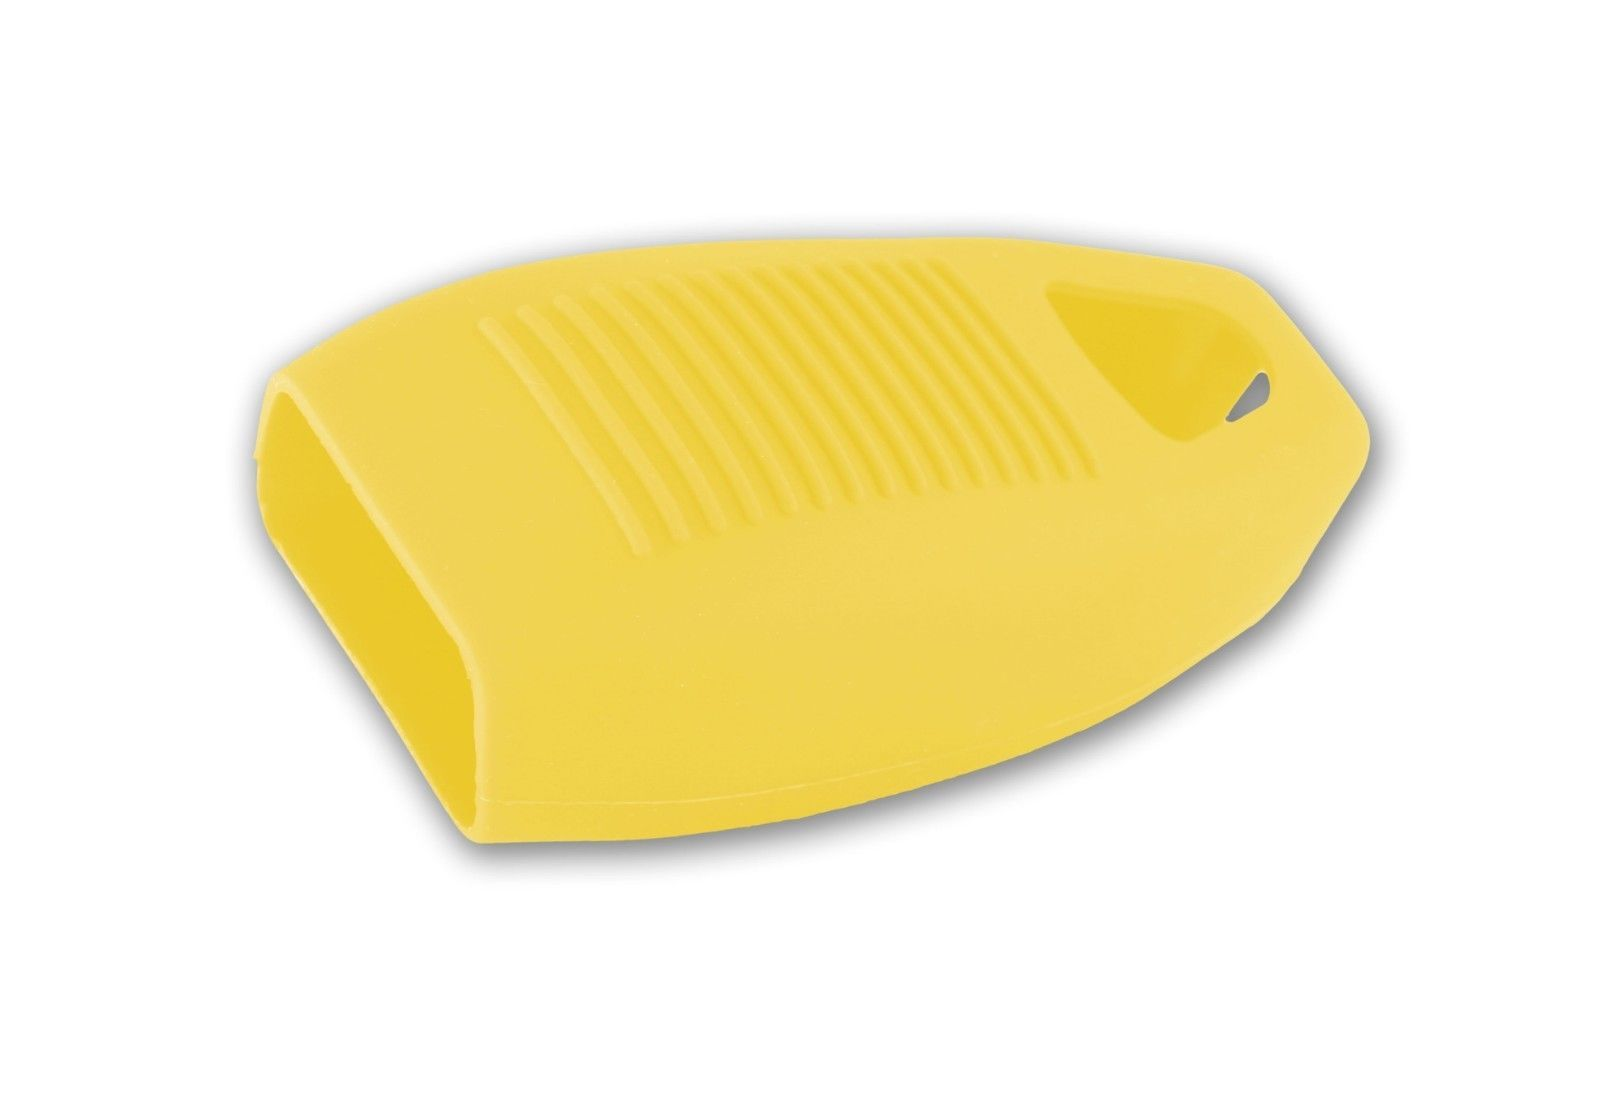 Primary image for Trimmer Tux Silicone Cover Protects From Heat, Vibration, and Slipping (YELLOW)